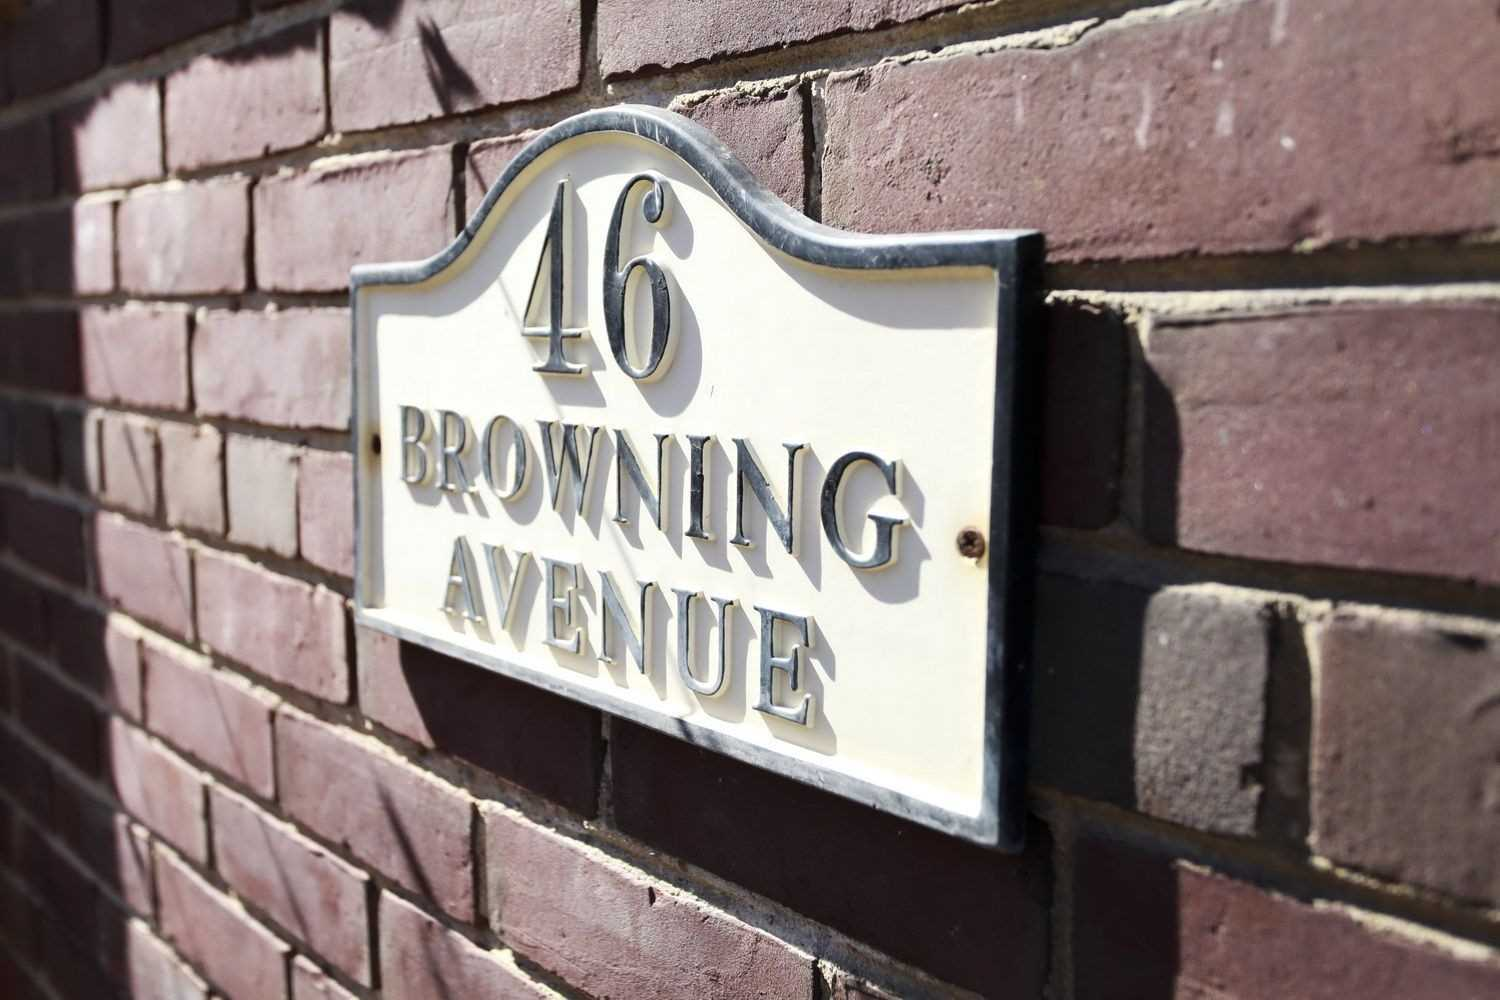 topflr - 46 Browning Ave